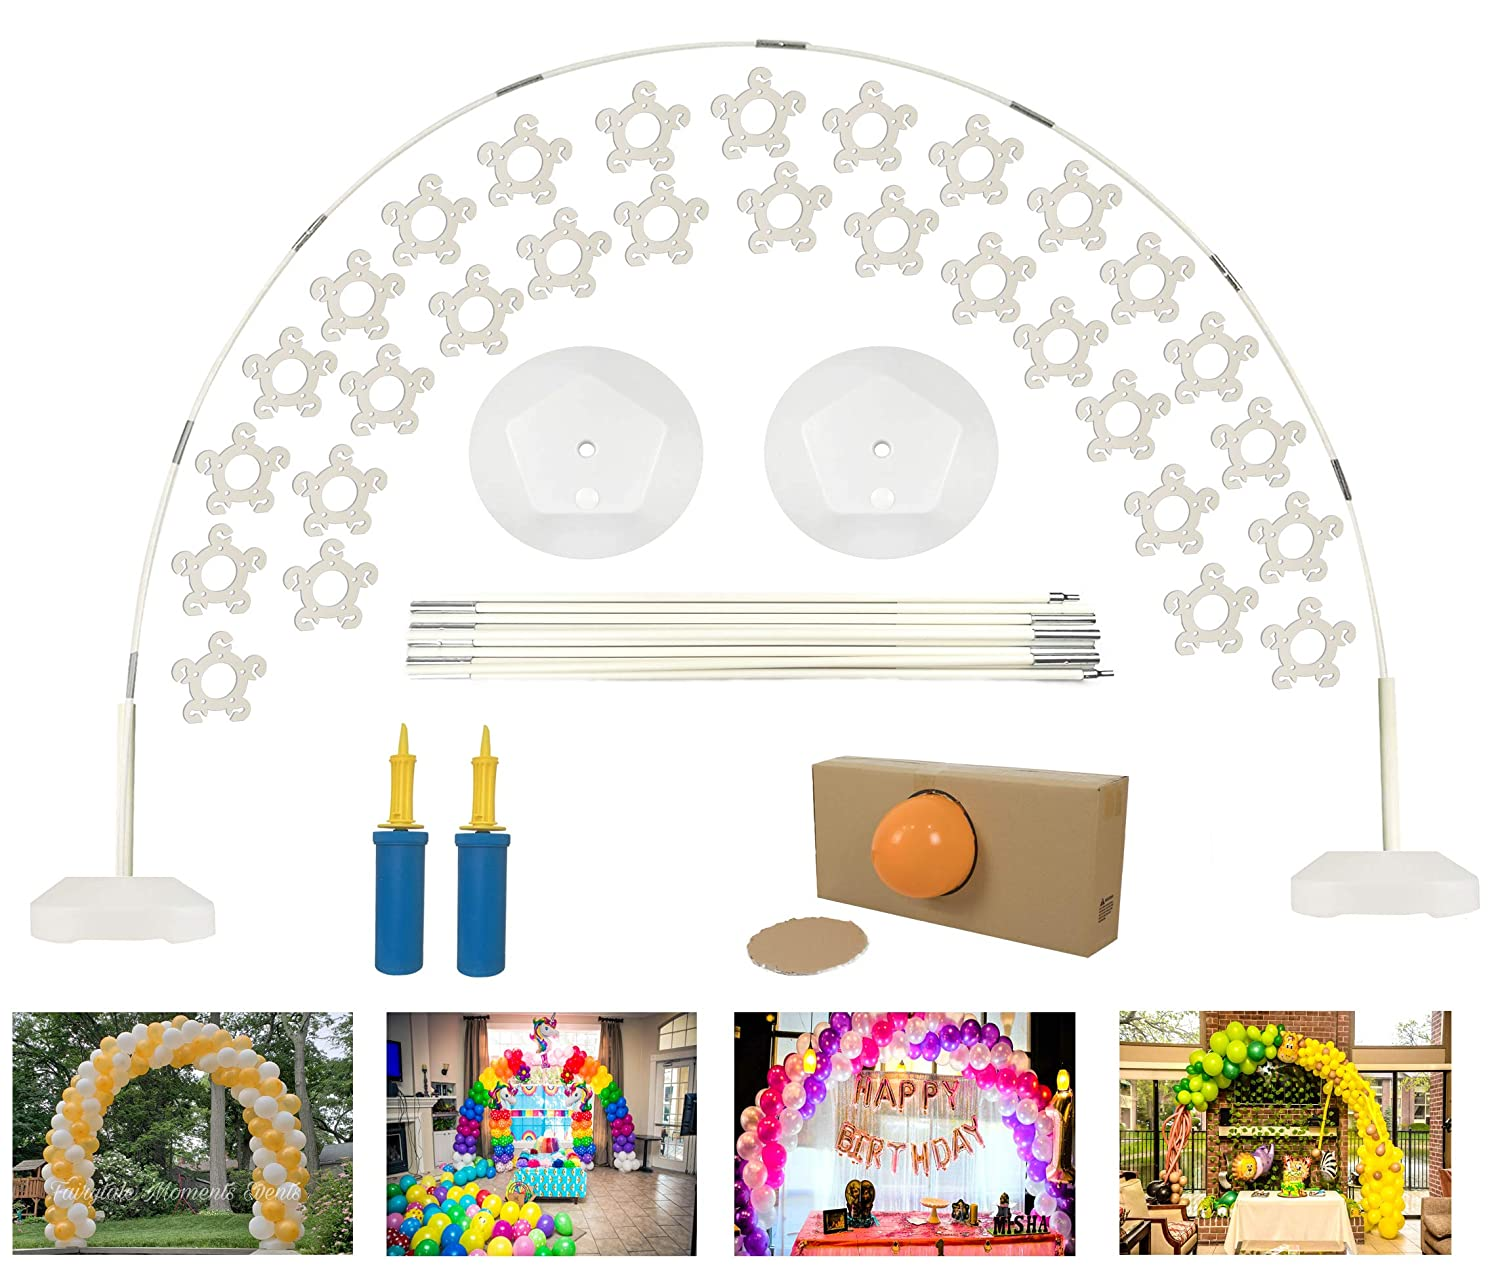 DeElf Quick & Easy Balloon Arch Kit for Birthday, Event Planning, Wedding Event Party Decoration